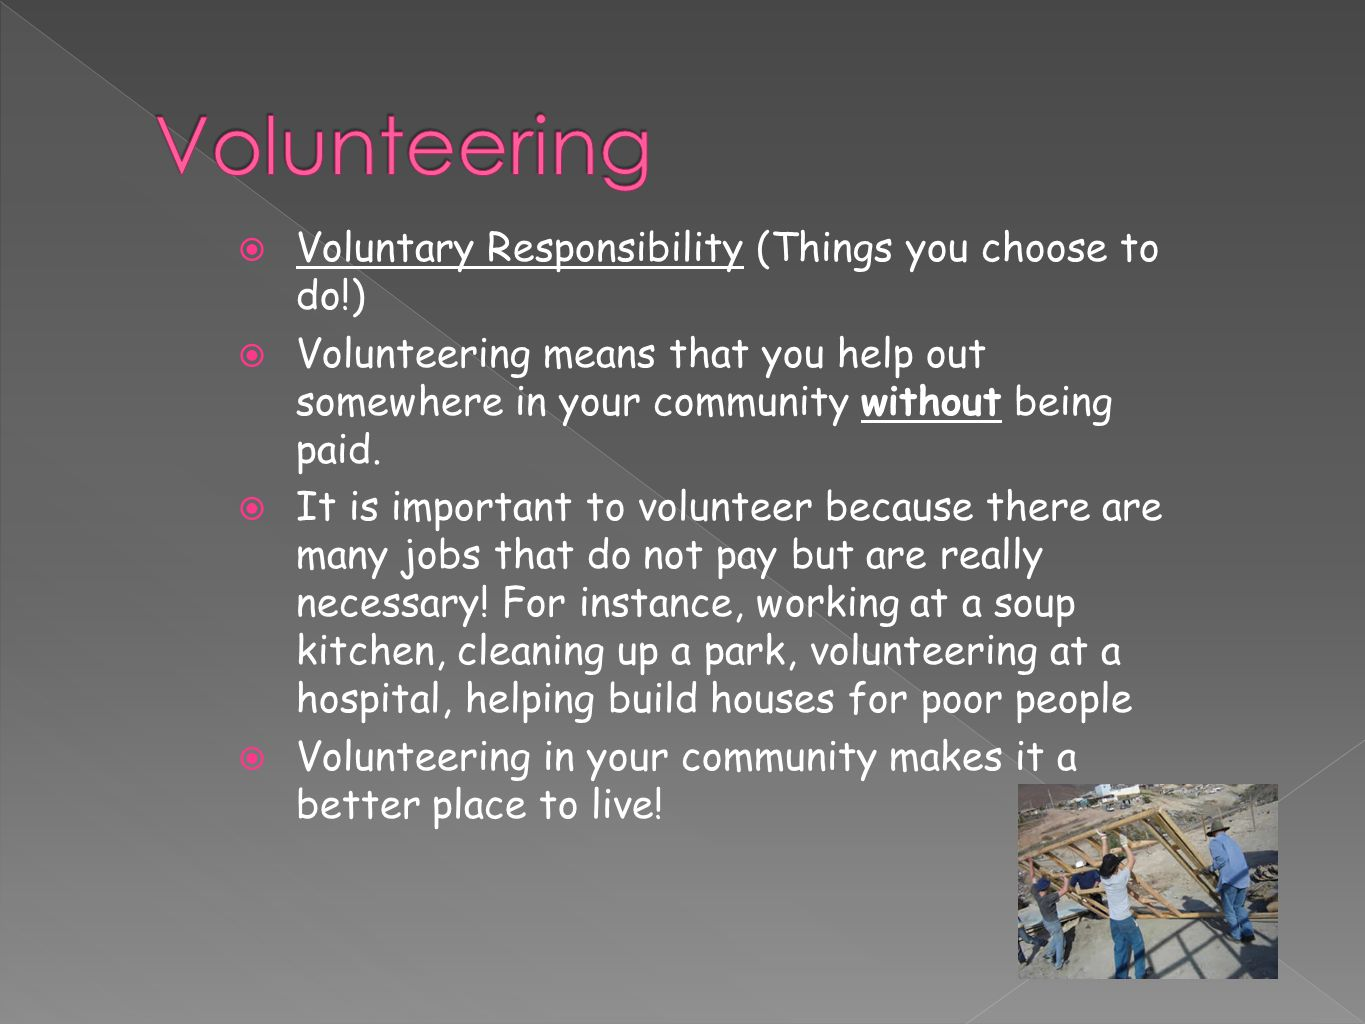  Voluntary Responsibility (Things you choose to do!)  Volunteering means that you help out somewhere in your community without being paid.